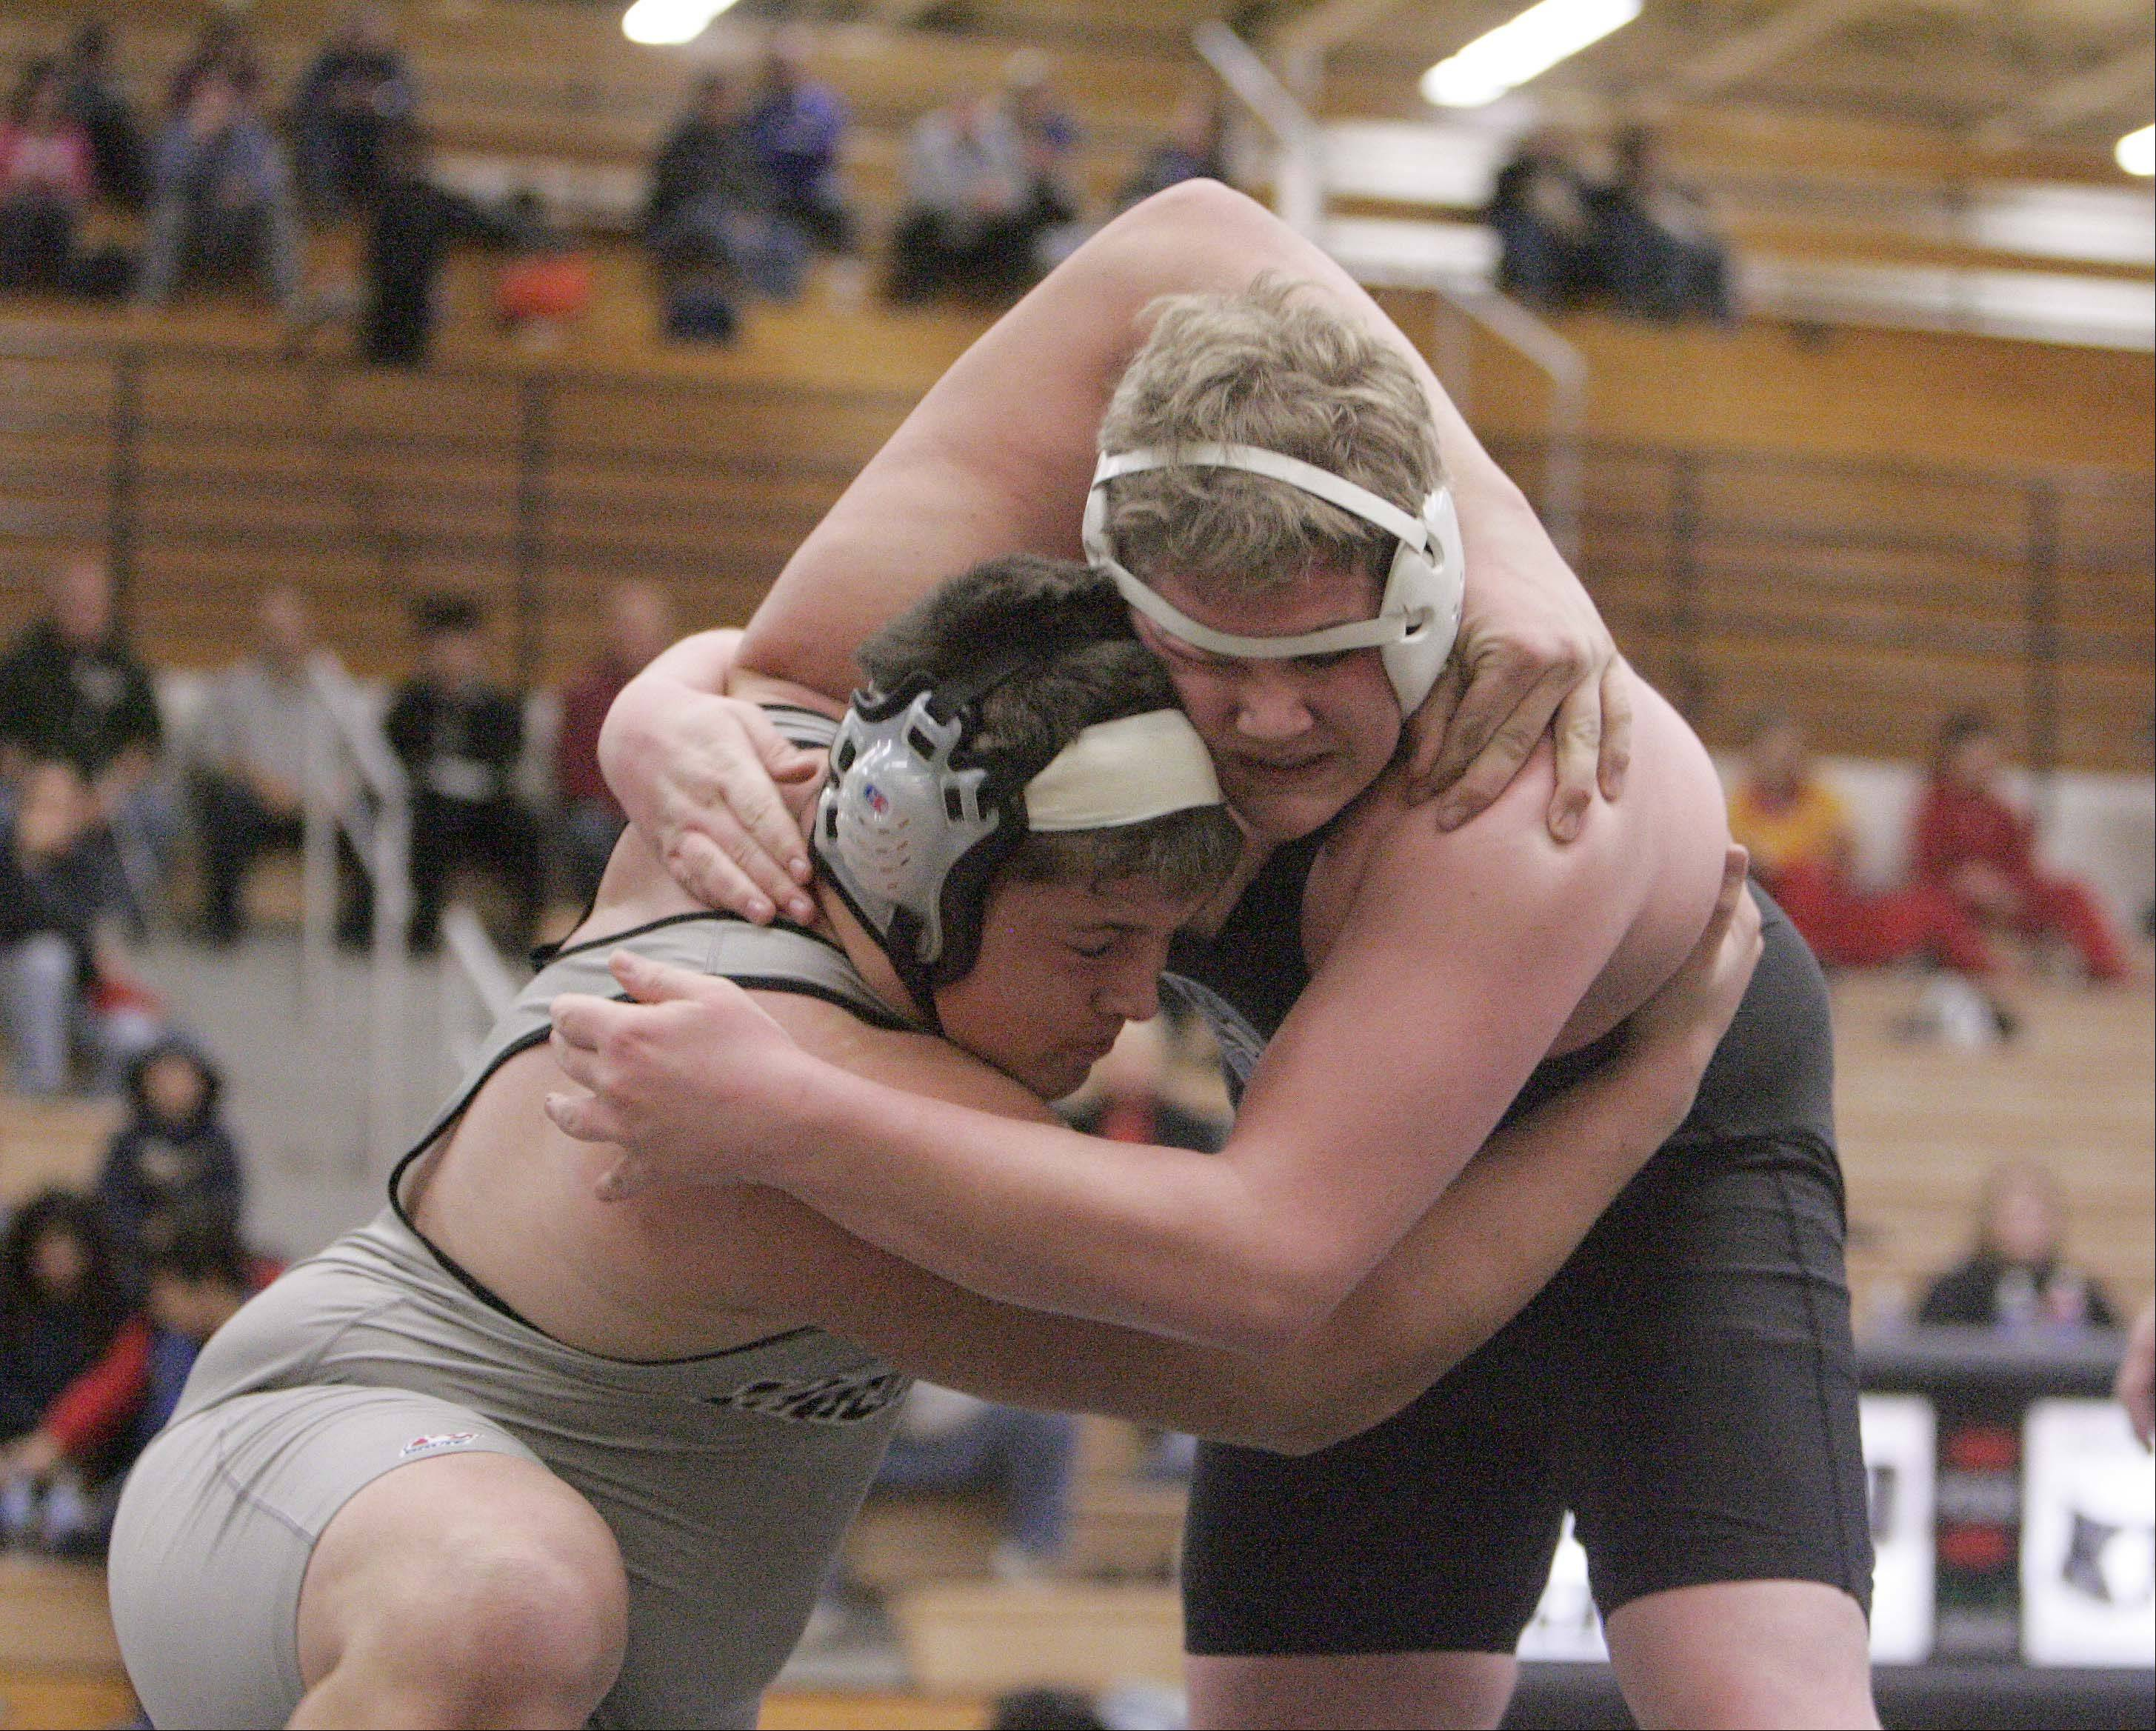 Kanelands's Zach Theis wrestles Geneva's Jake Anderson at 285 pounds during the Kaneland wrestling quad at Saturday December 15, 2012. Anderson won the match.